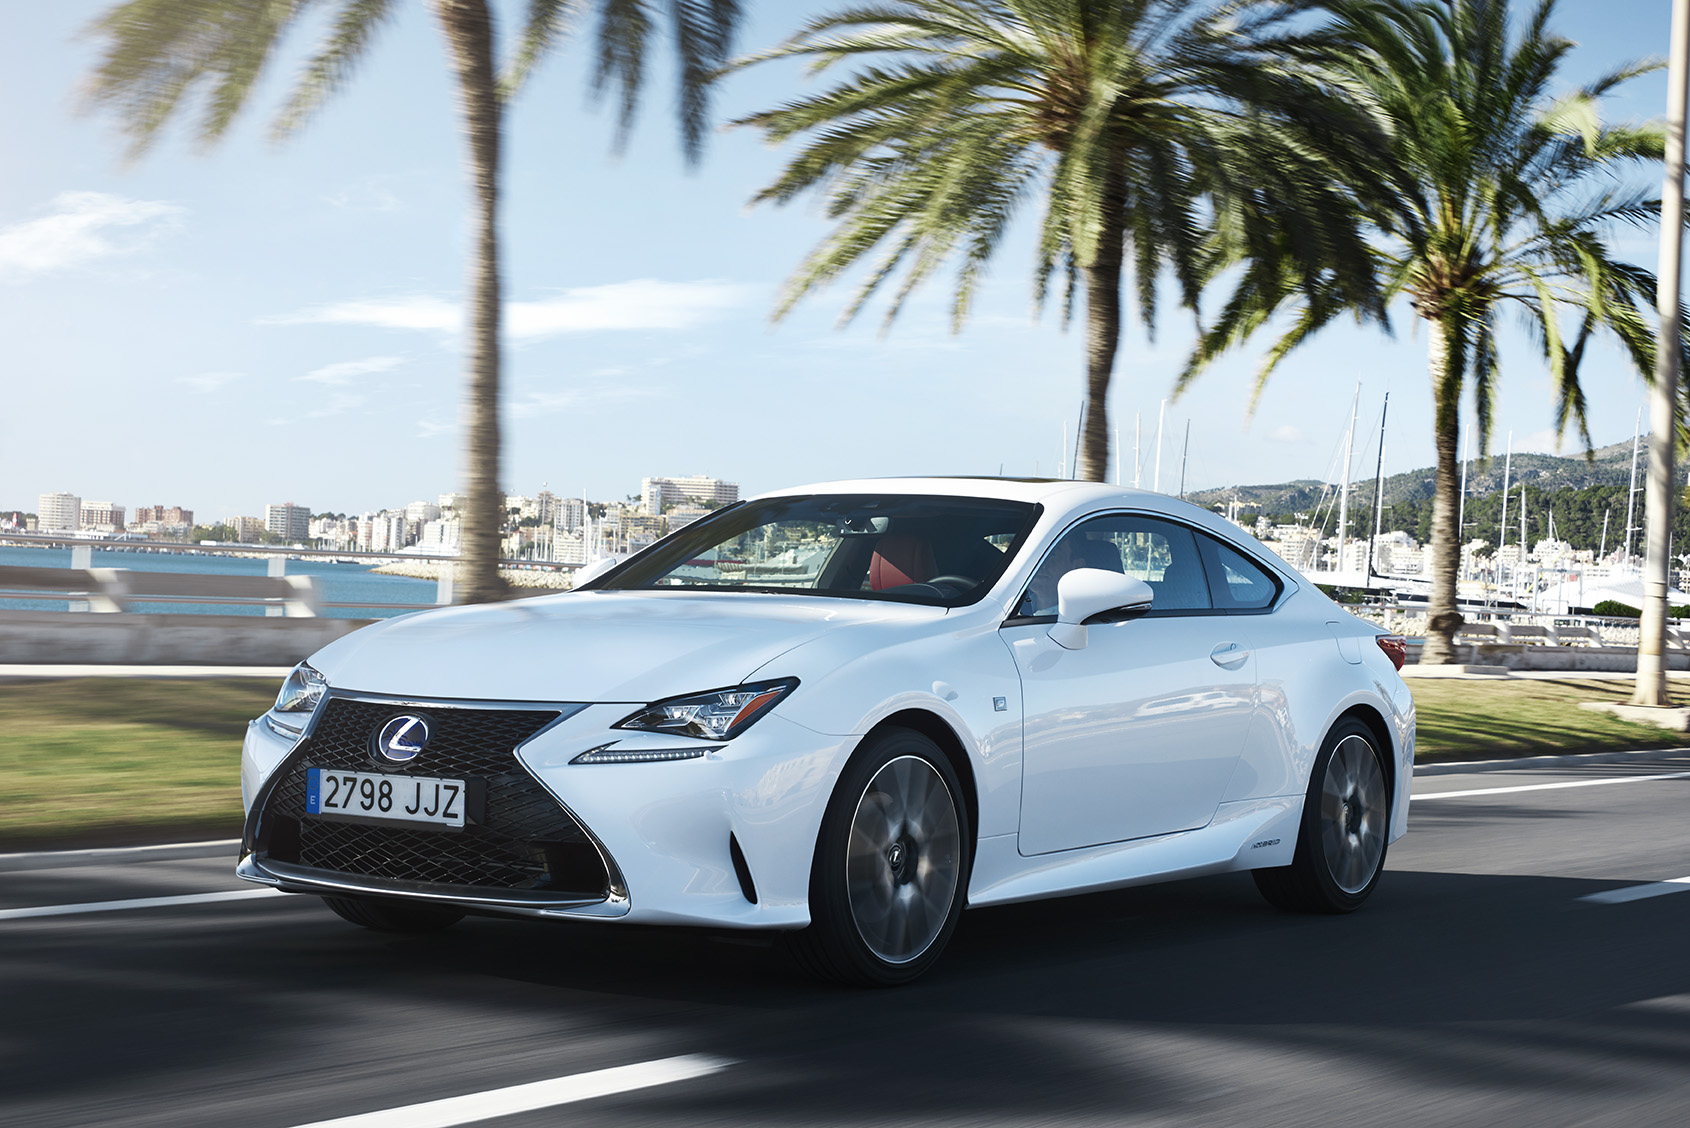 essai lexus rc 300h le coup sport hybride. Black Bedroom Furniture Sets. Home Design Ideas